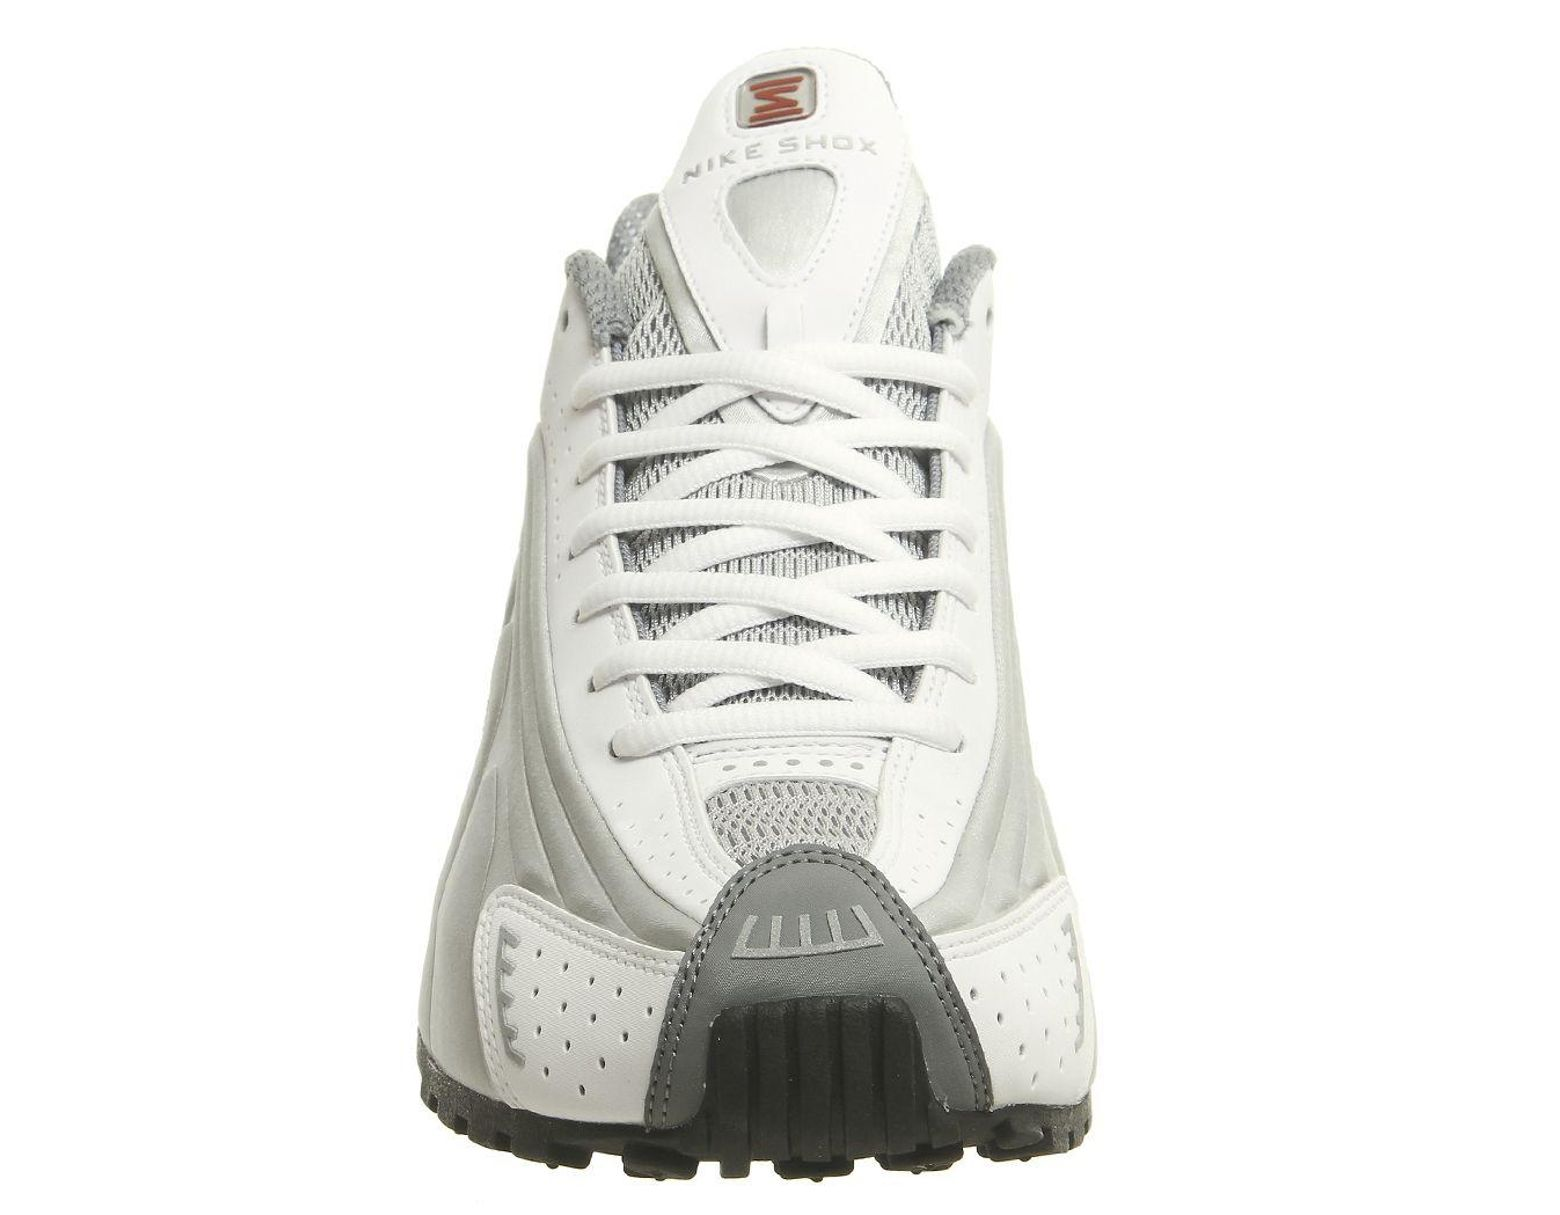 meet cace8 53b26 Nike Shox R4 Trainers in Metallic for Men - Lyst